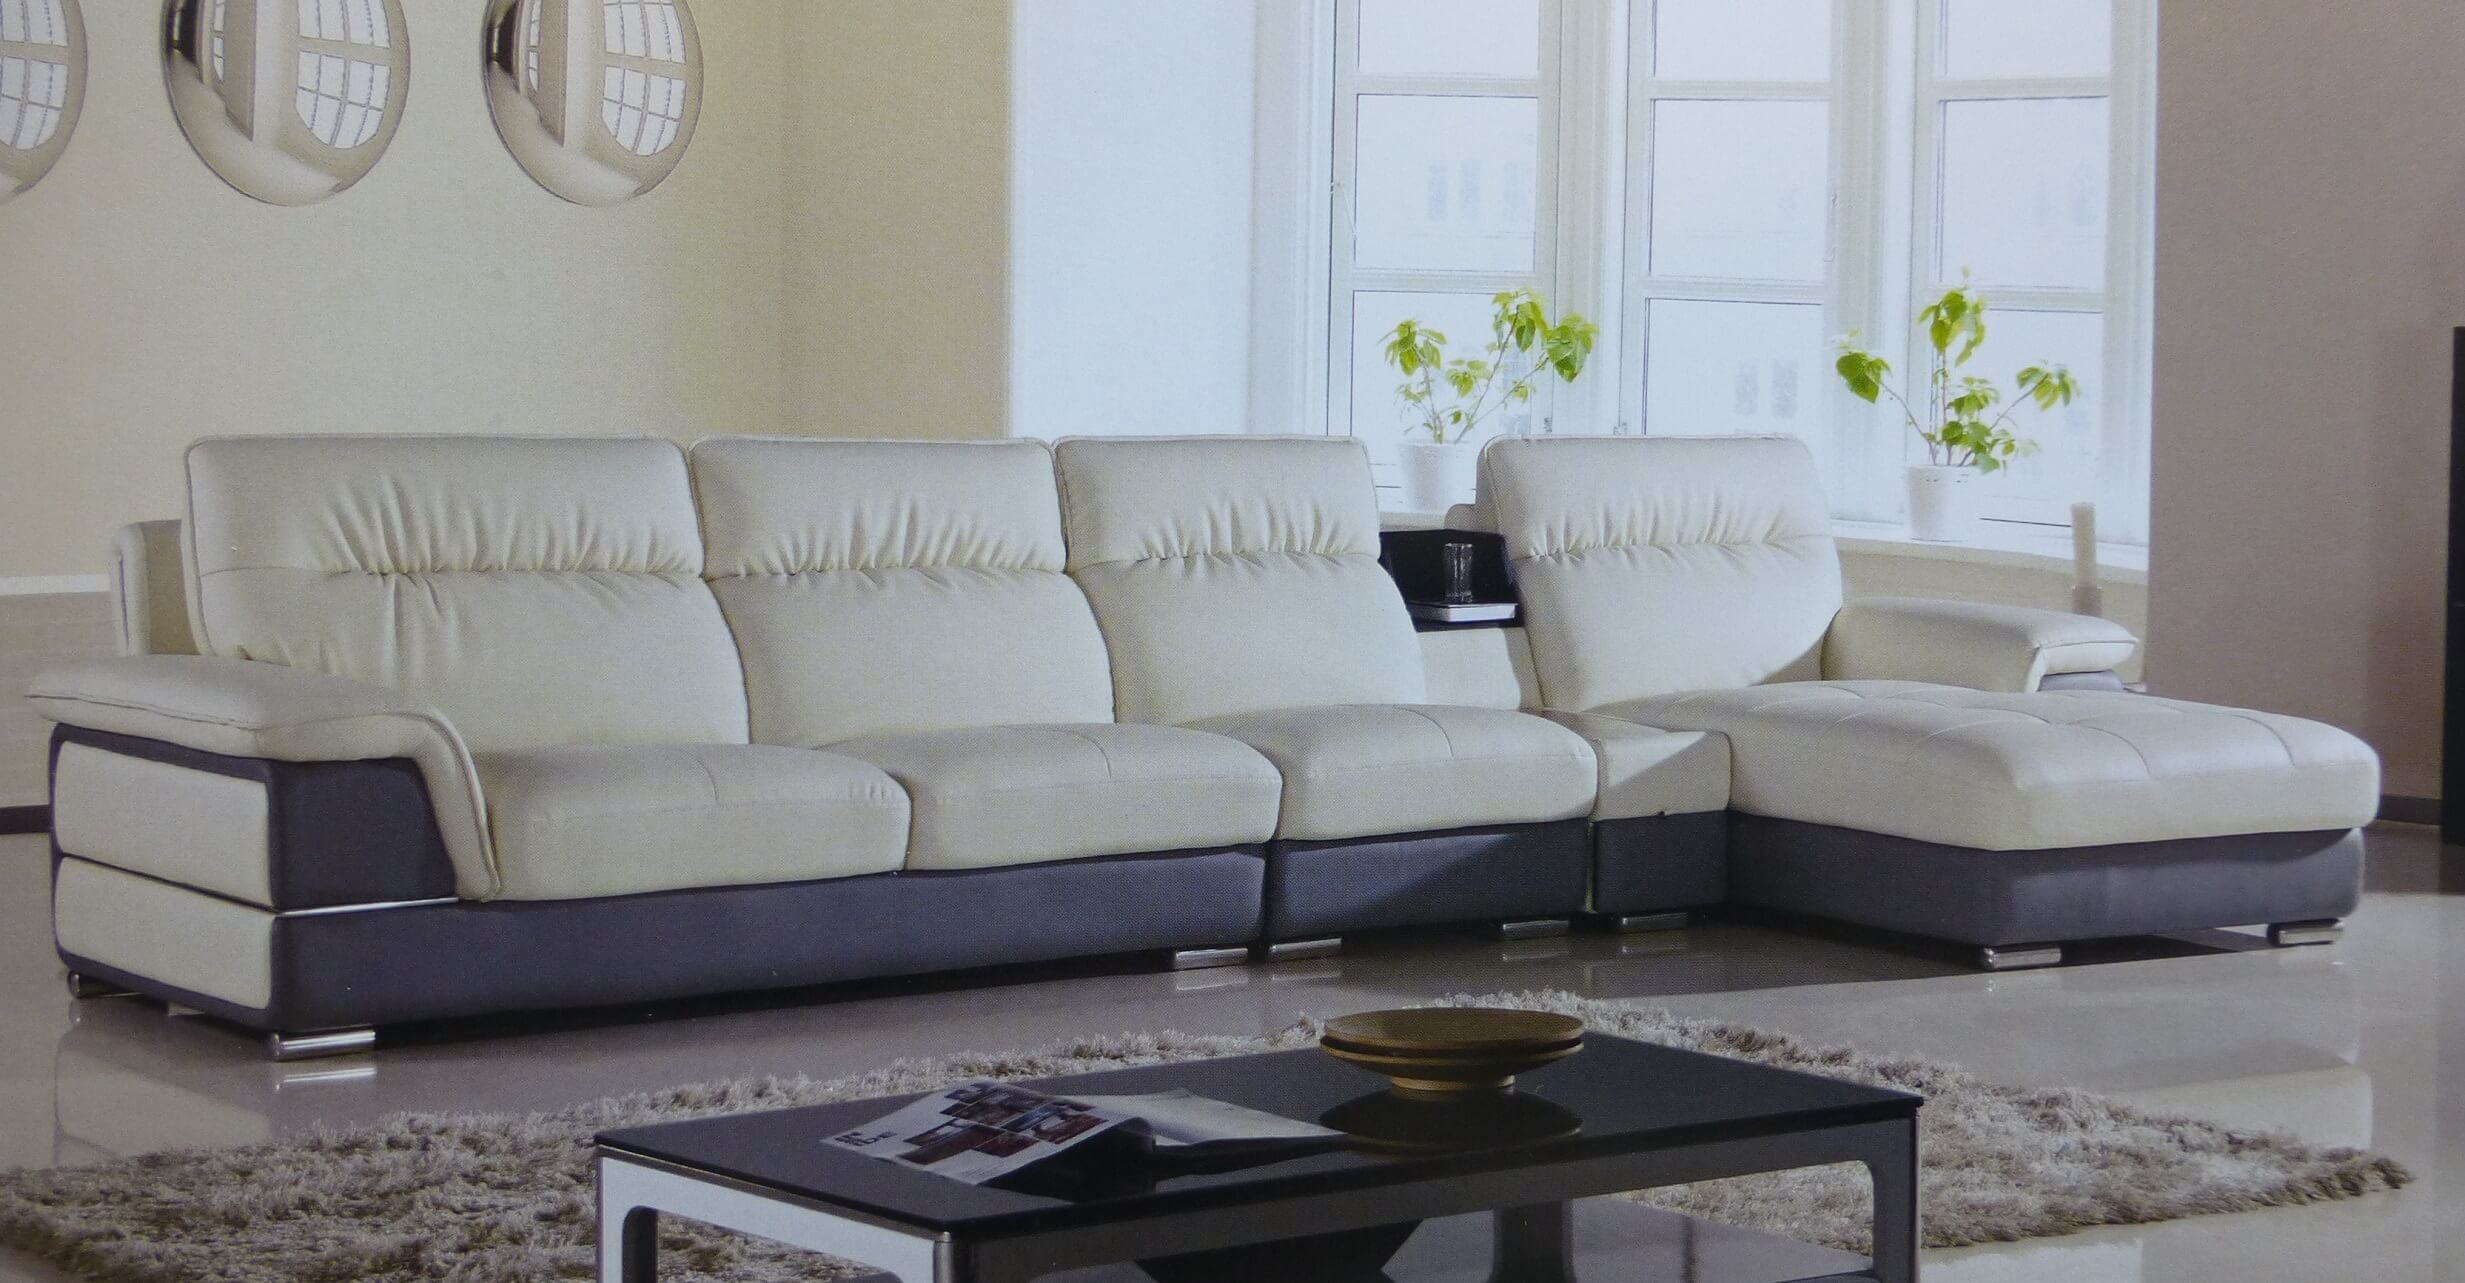 4 Piece Hover Ivory Gray Leather Sectional Usa Furniture Online